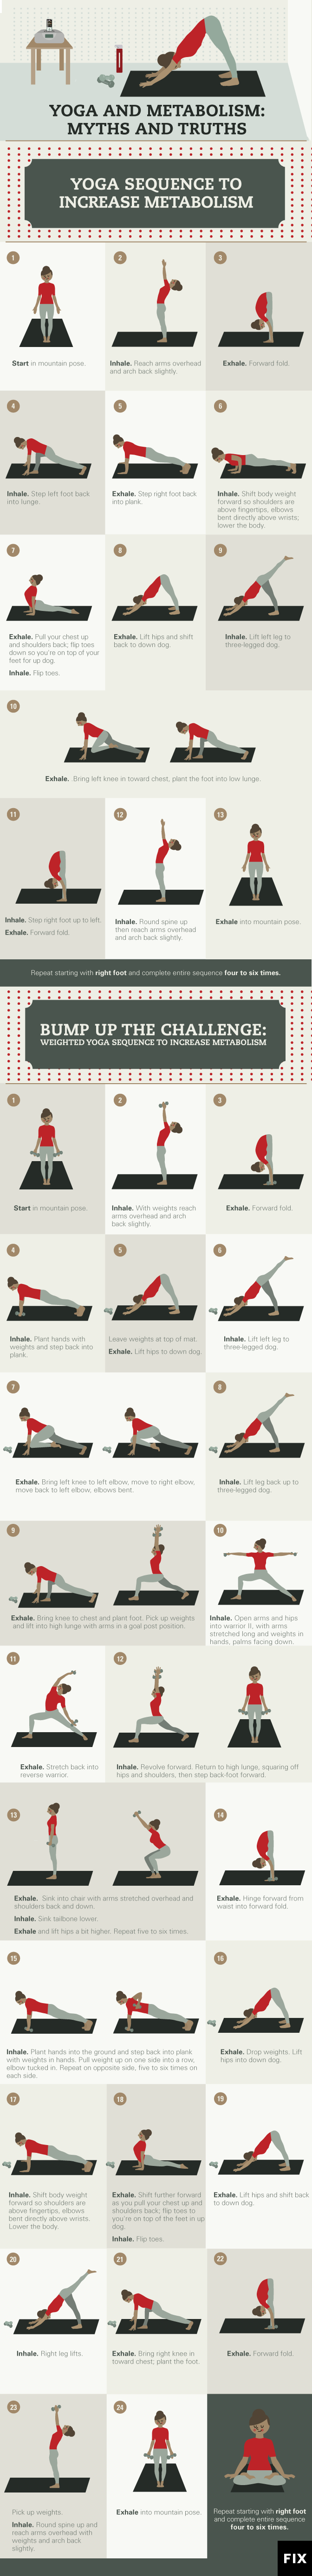 Yoga and metabolism: myths and truths